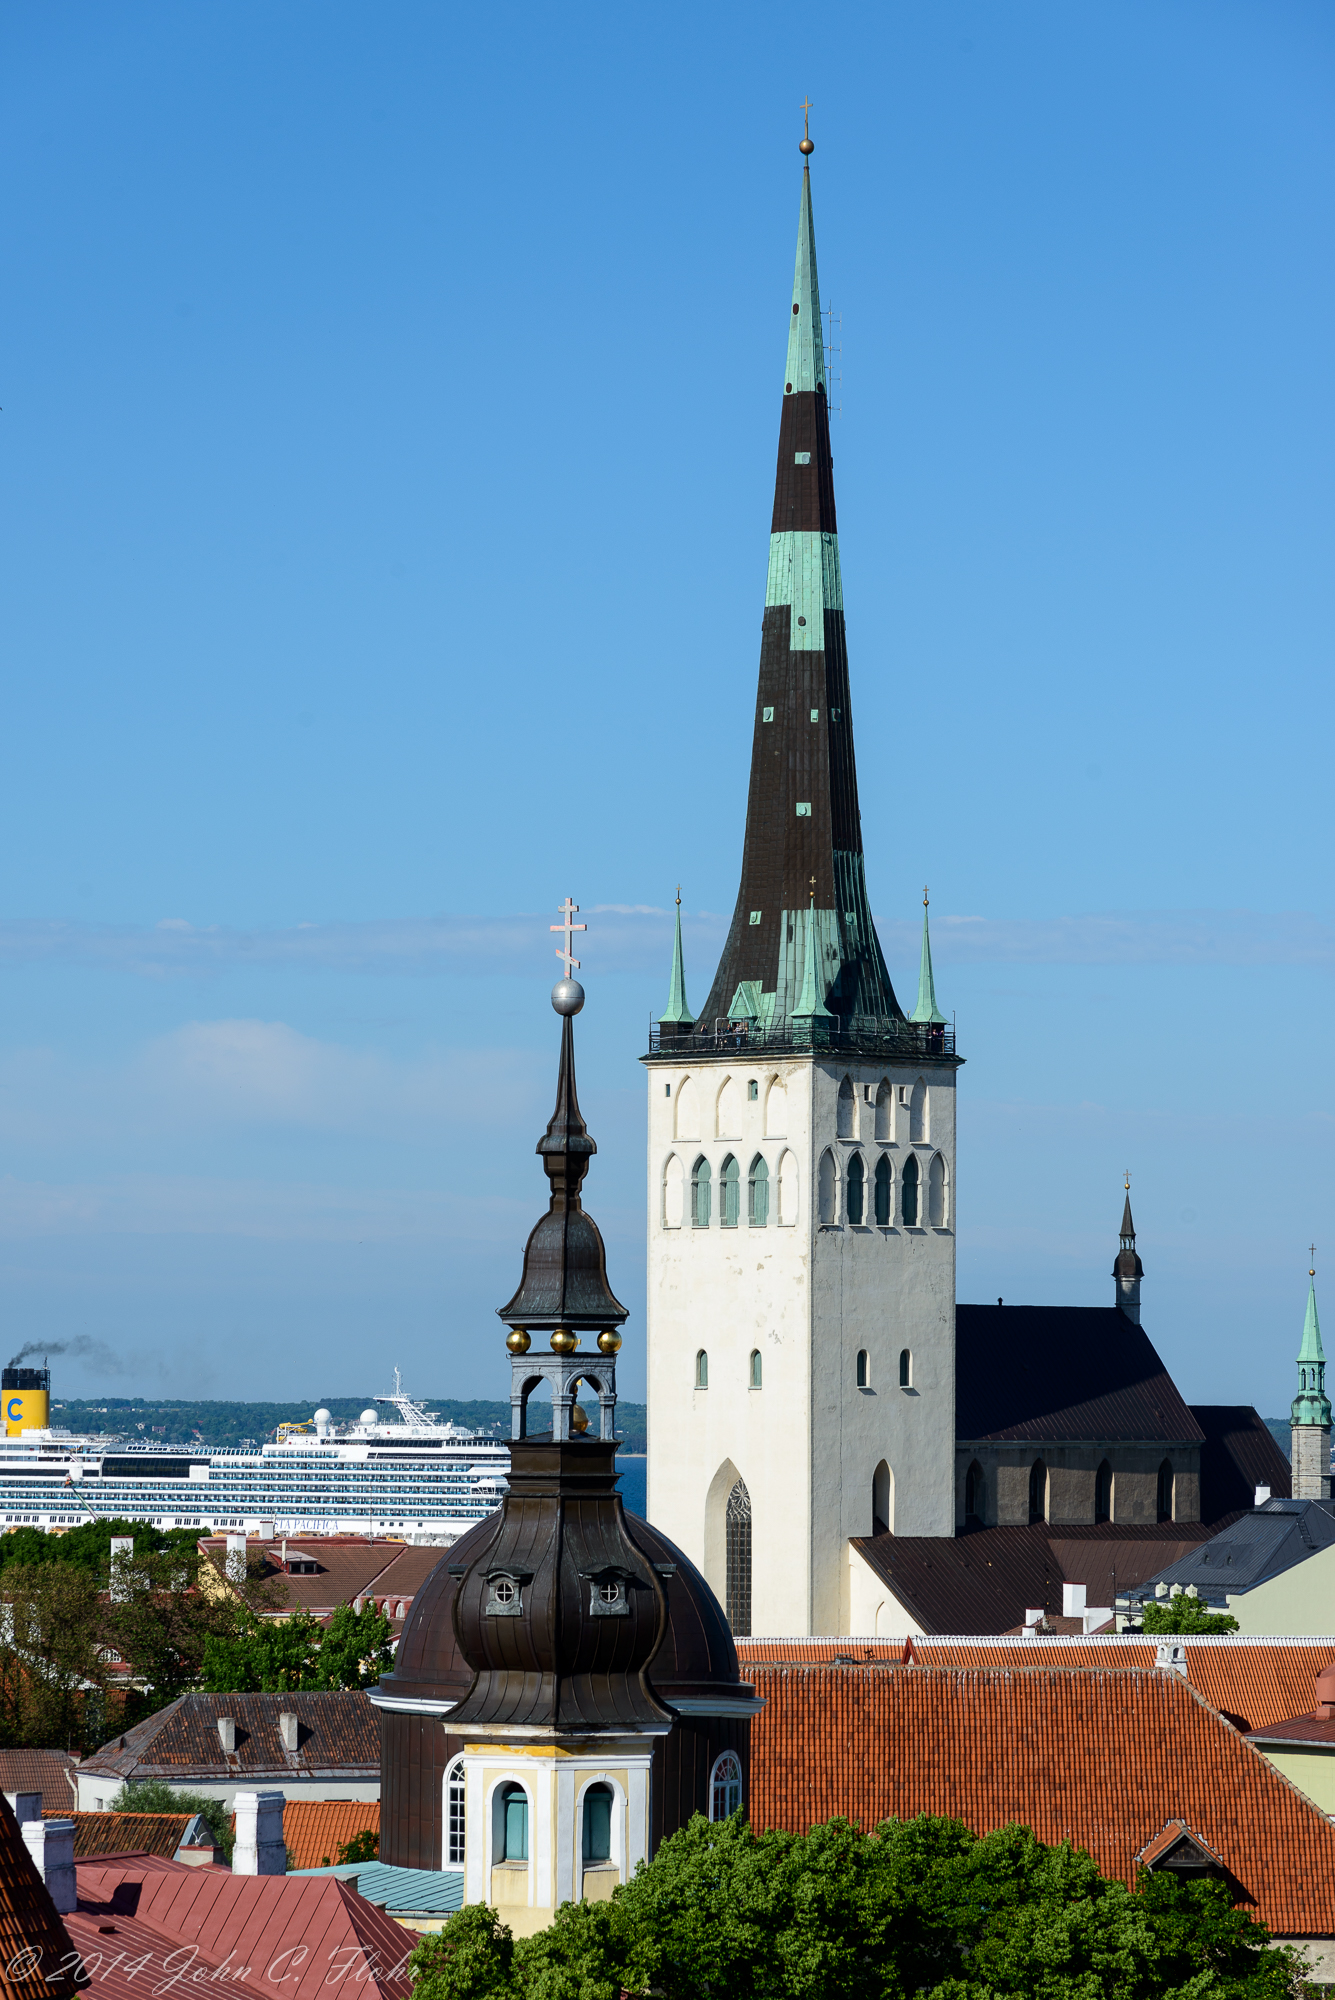 St. Olaf's Church And Harbor